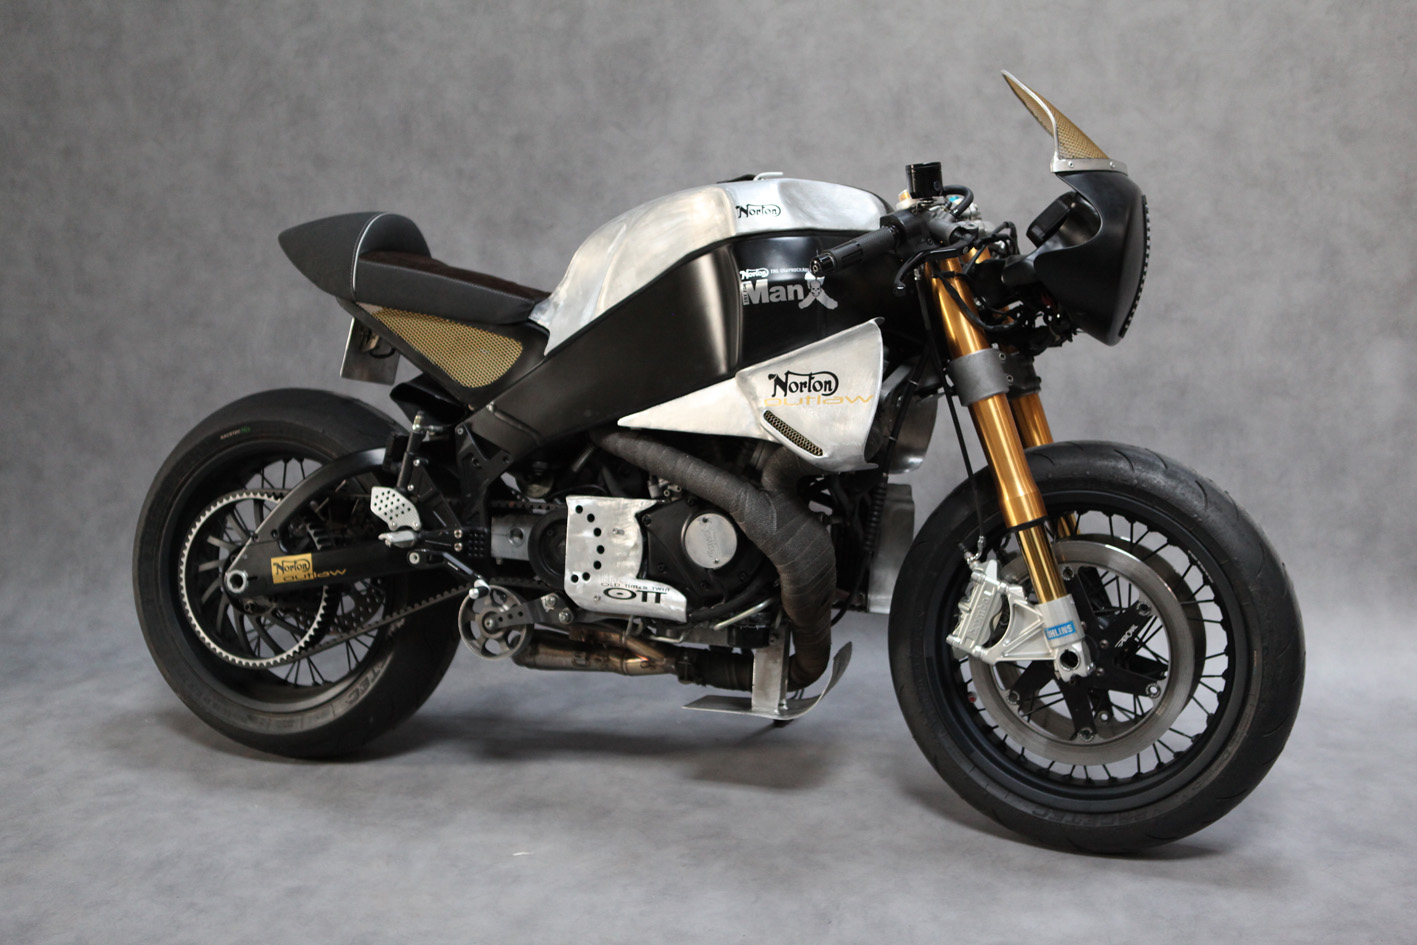 Buell norton manx neoretro return of the cafe racers for The norton